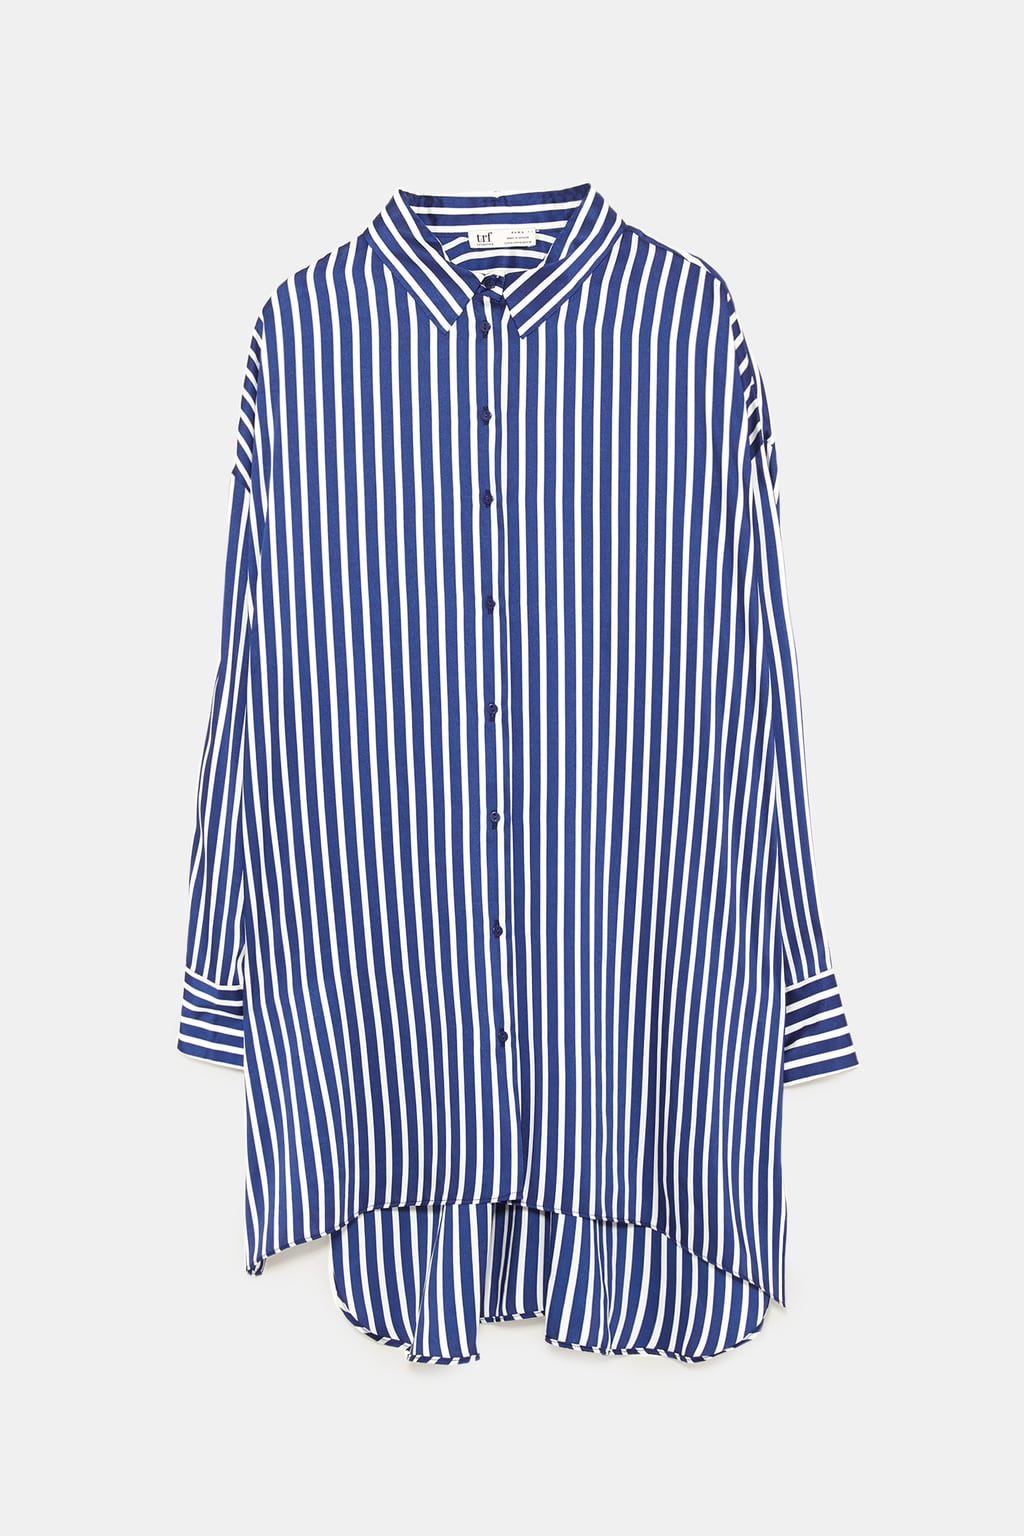 - Asymmetrical shirt with long sleeves with buttoned cuffs. Front button closure. Side slits. $39